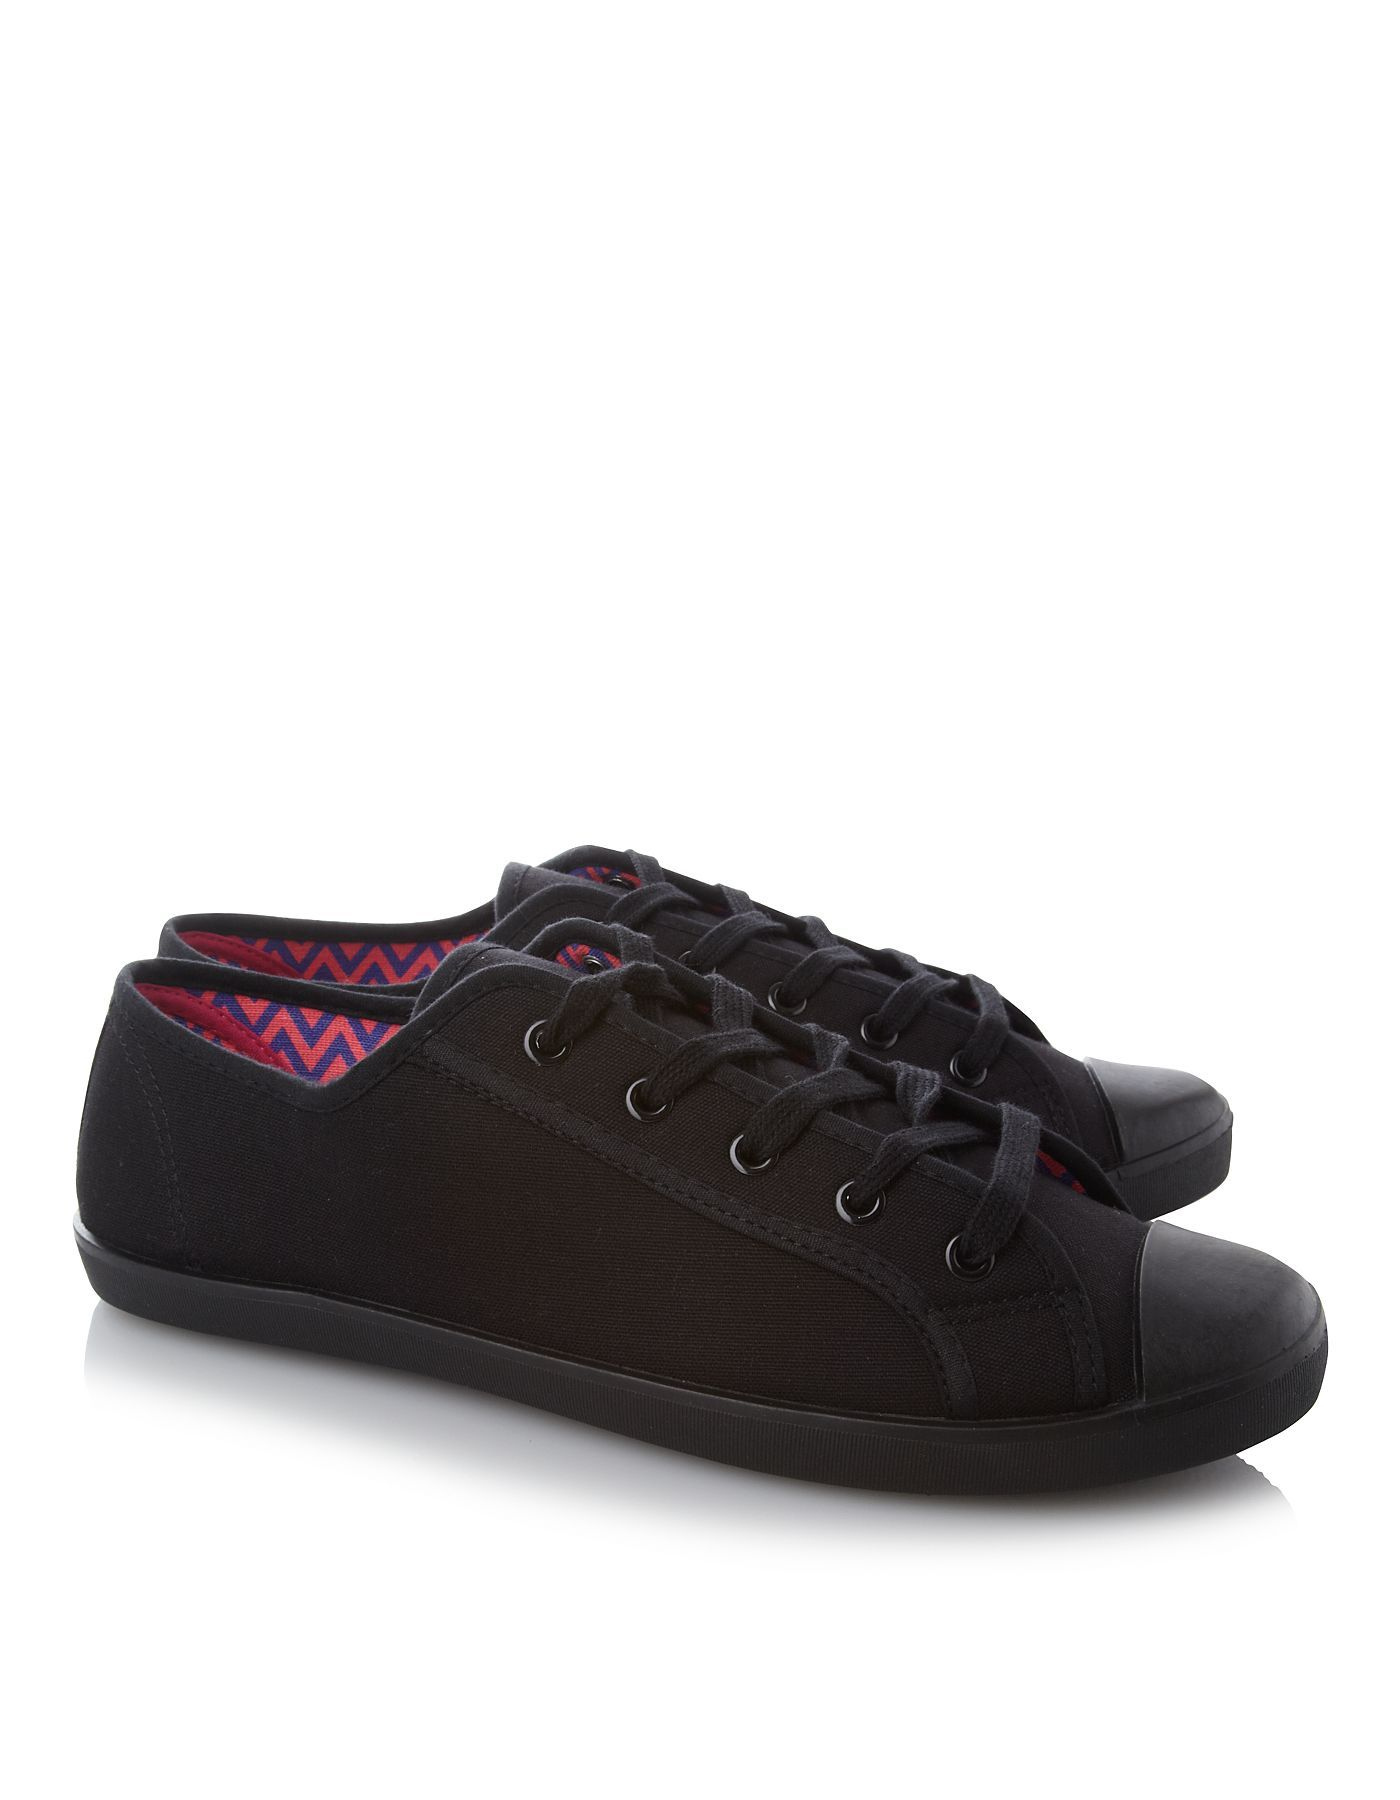 canvas trainers women george at asda shoes fashion. Black Bedroom Furniture Sets. Home Design Ideas